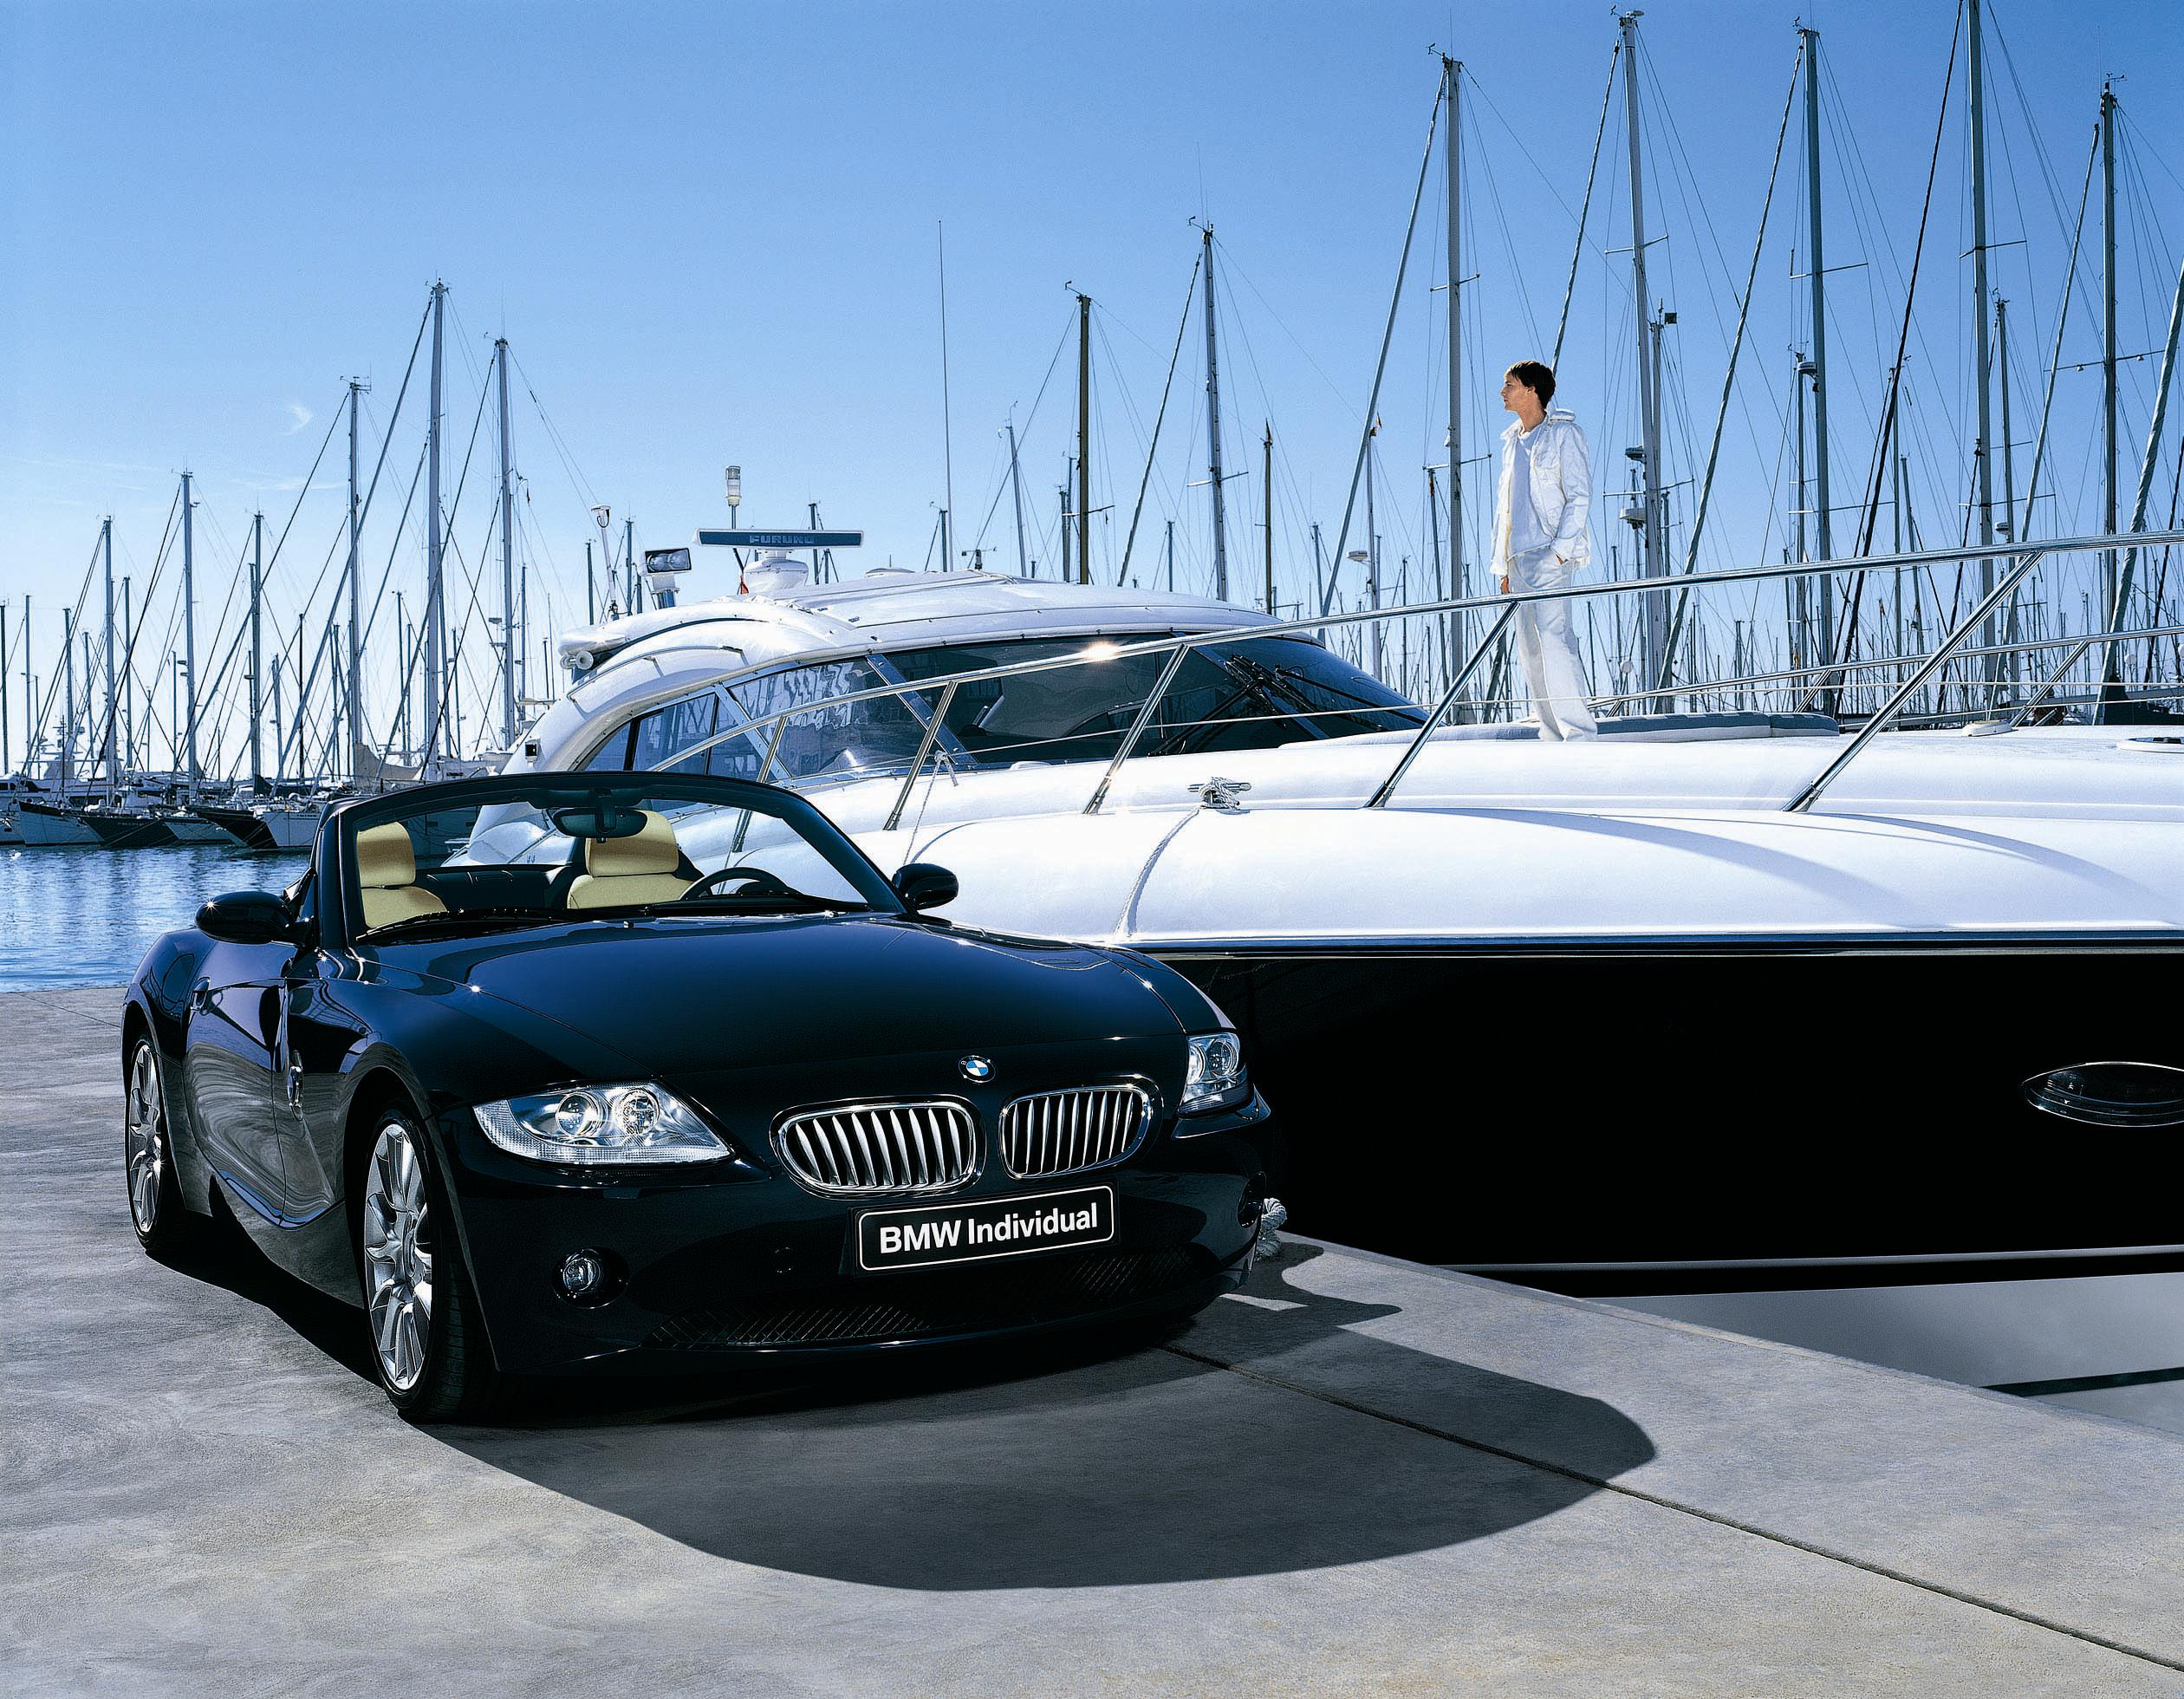 2008 Bmw Z4 Roadster 2 5i Individual Edition Top Speed